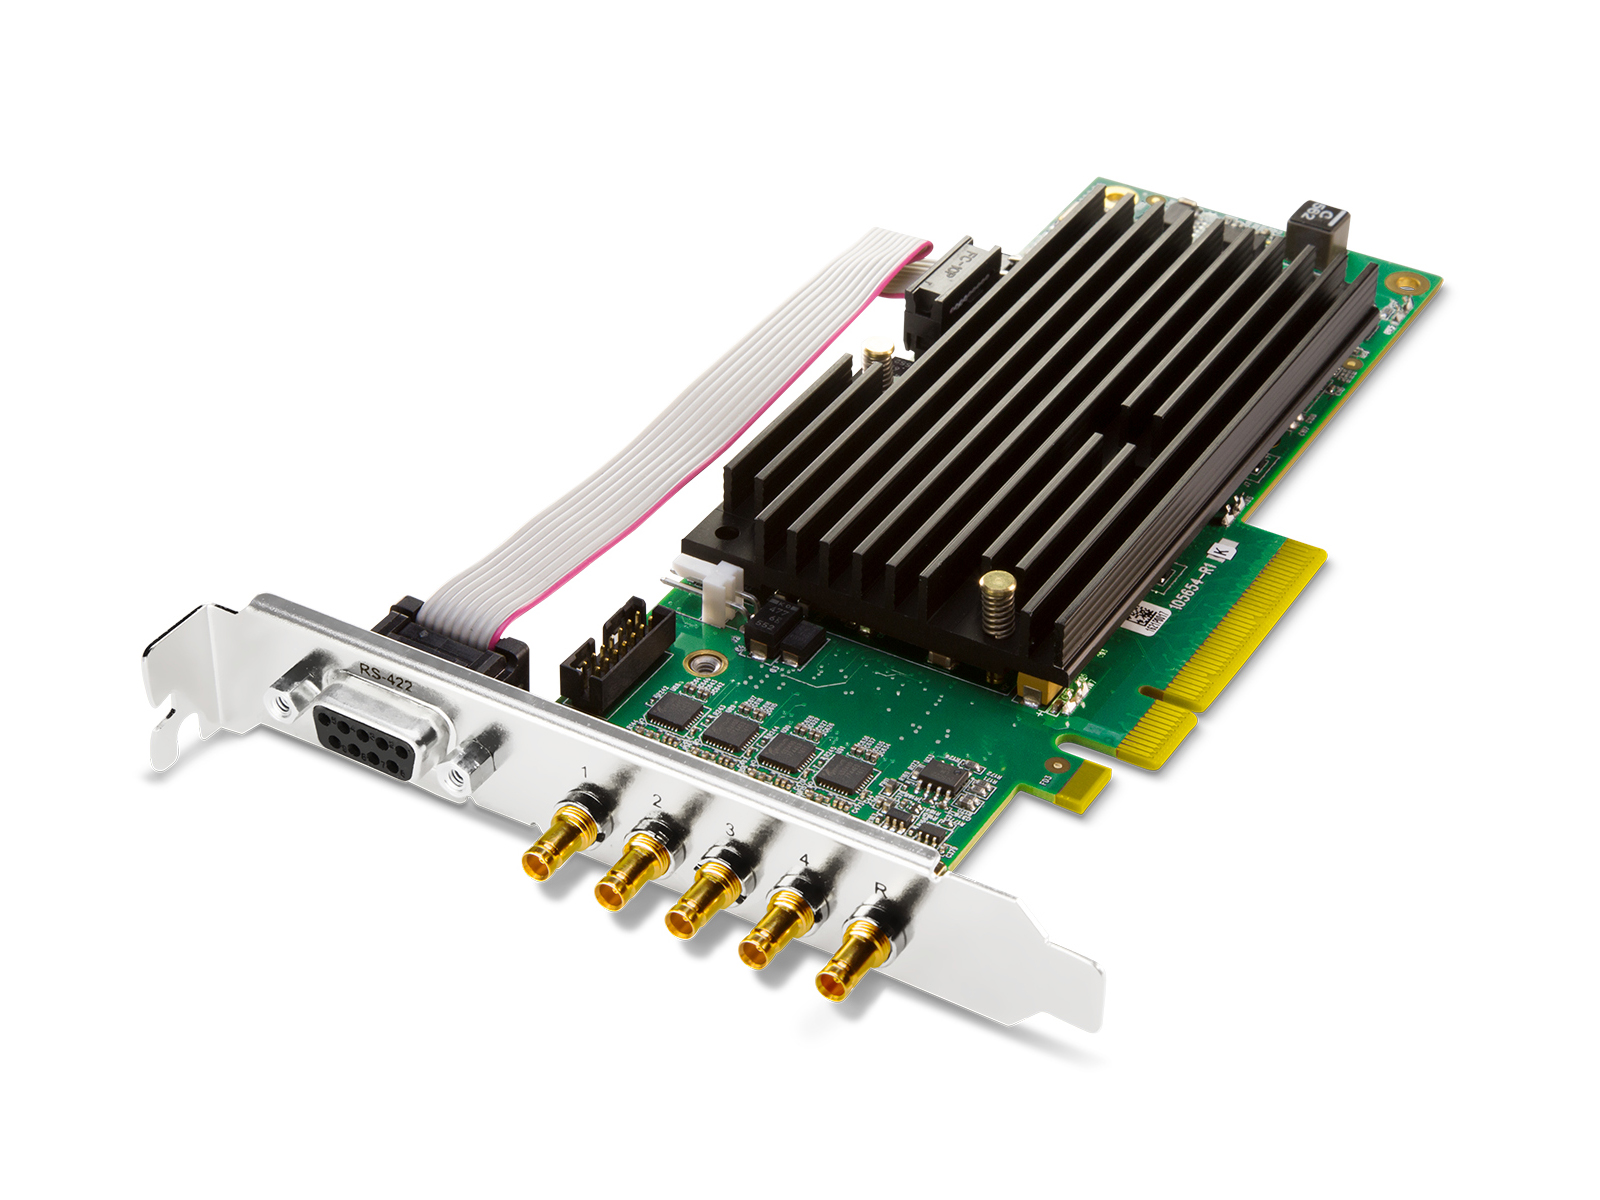 AJA CRV44-T-NF Corvid 44 with standard profile PCIe bracket and passive heat sink/includes 5x 101999-02 cables